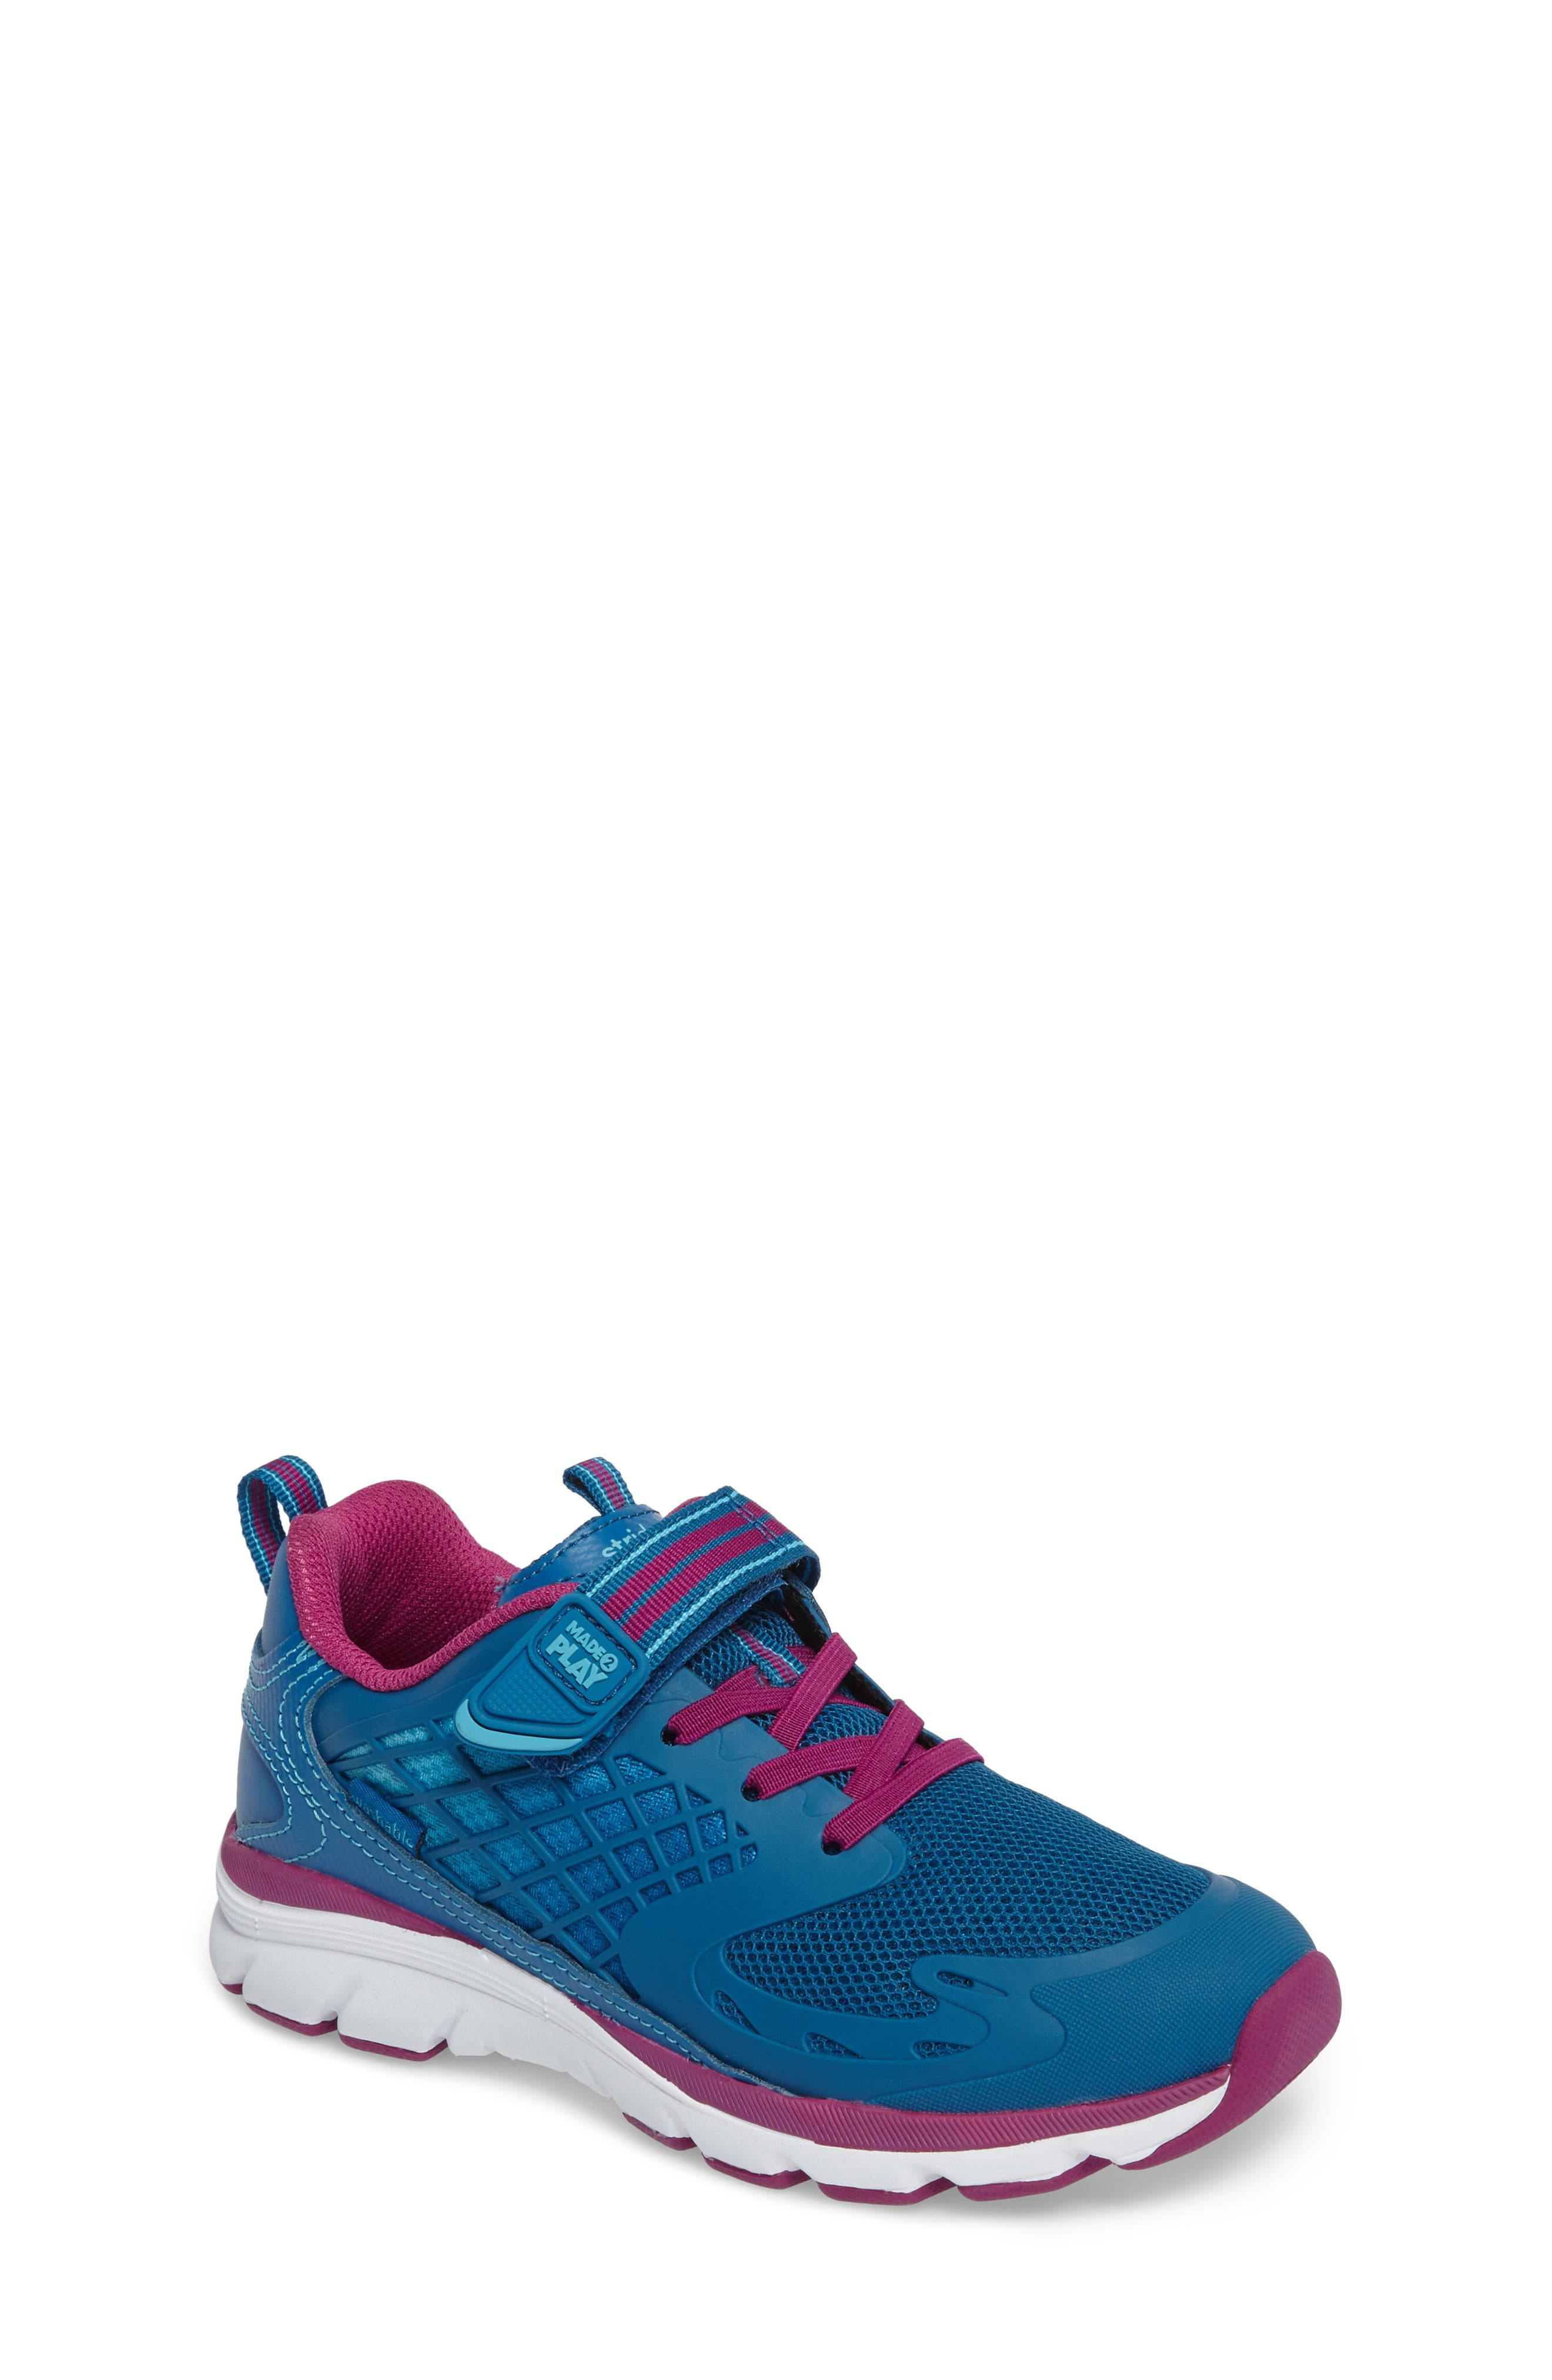 Alternate Image 1 Selected - Stride Rite Made 2 Play® Cannan Sneaker (Baby, Walker, Toddler & Little Kid)